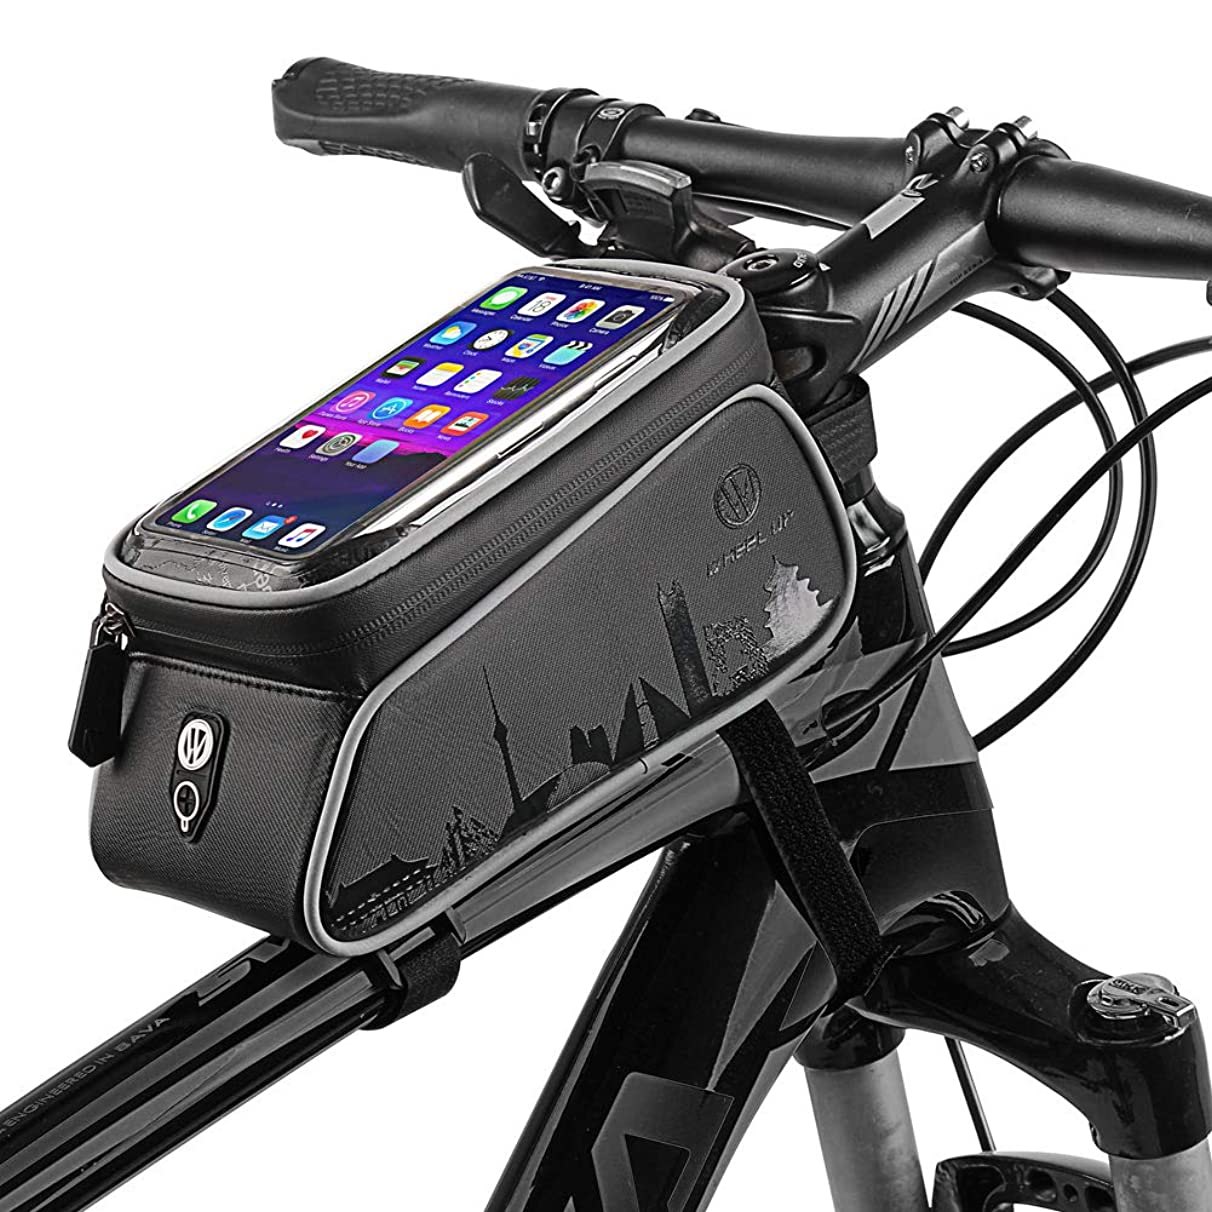 Bike Frame Bag, Cycling Frame Pannier Mobile Phone Holde, Waterproof Resistant Cycling Front Tube Frame Pannier Mountain MTB City Road Bicycle Crossbar Bag Pouch Holder for Smartphone